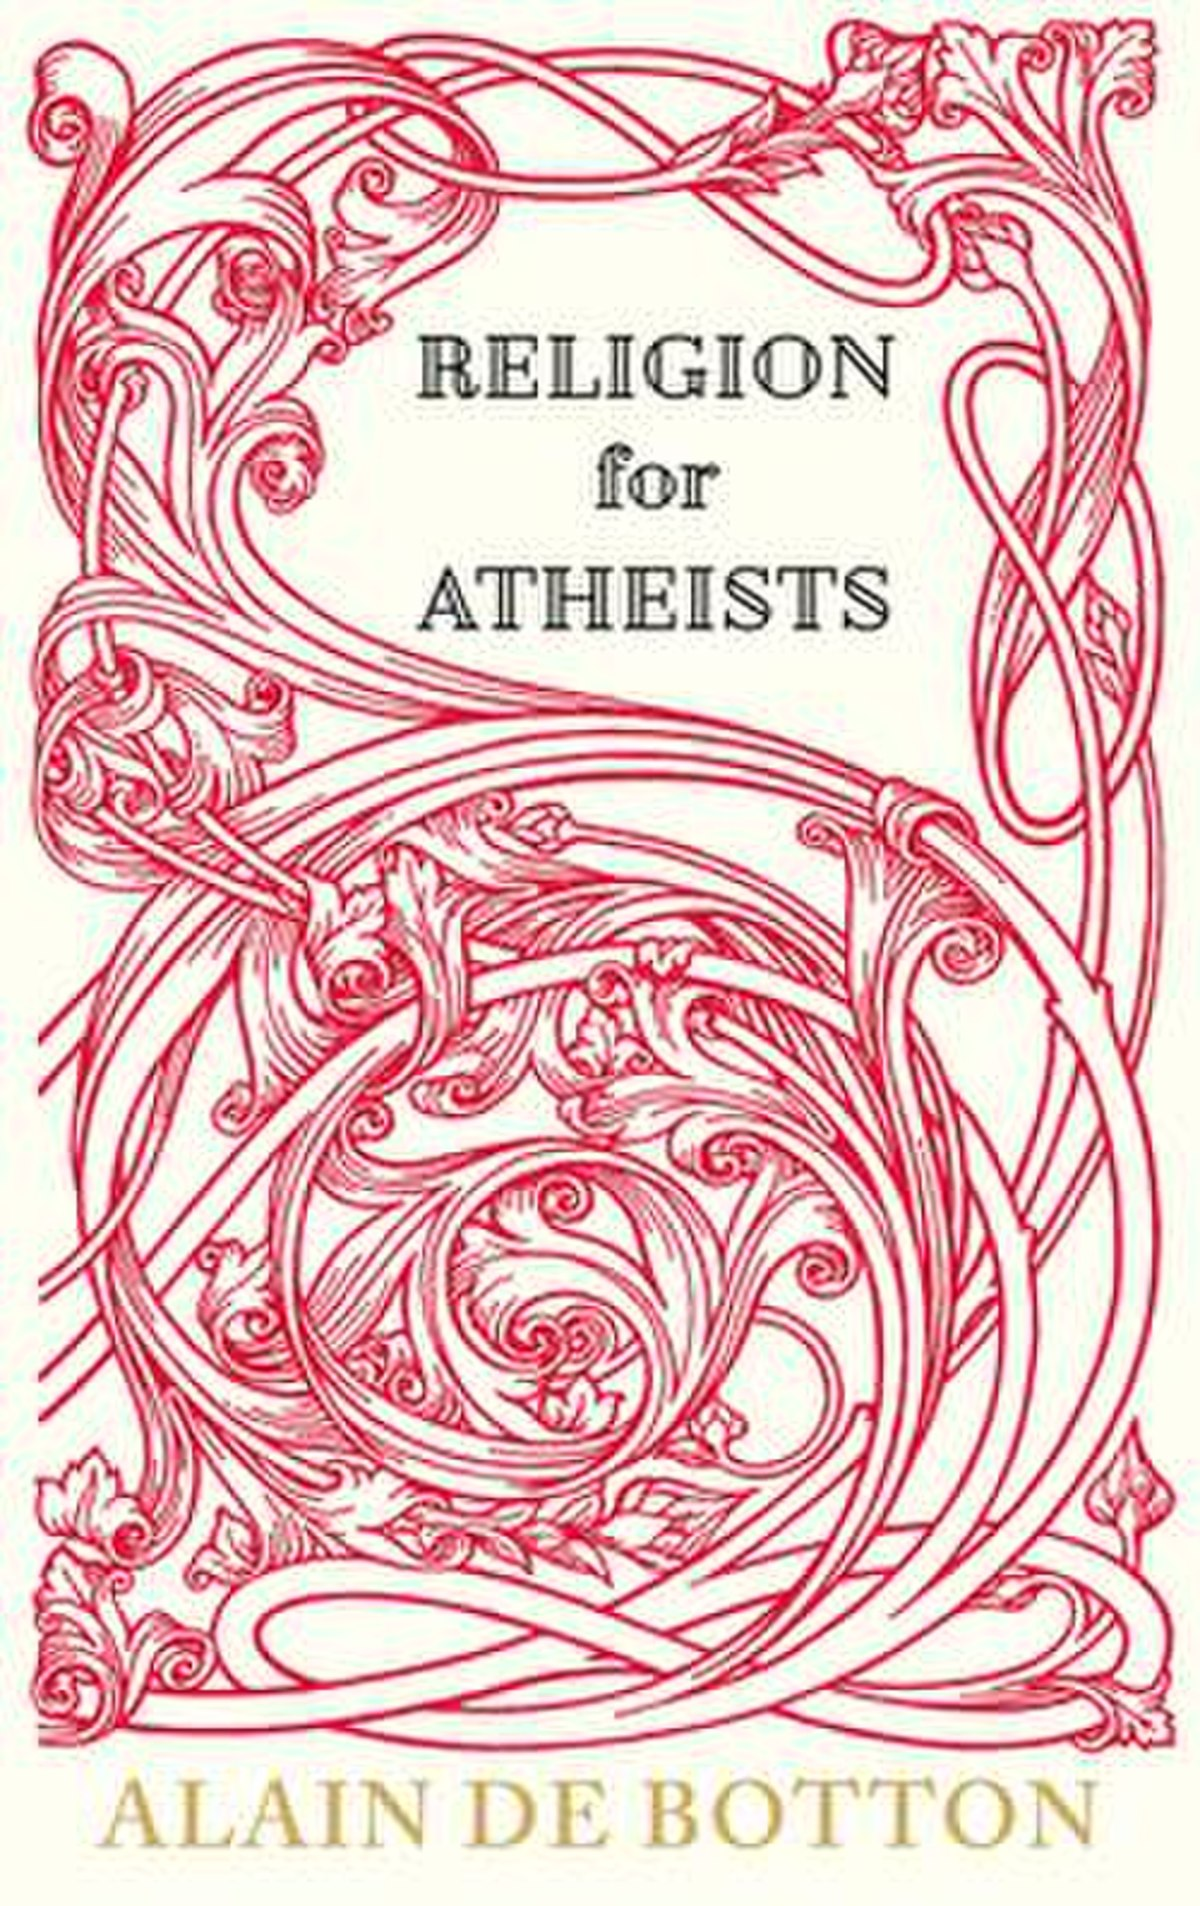 Religion for Atheists book cover.jpg